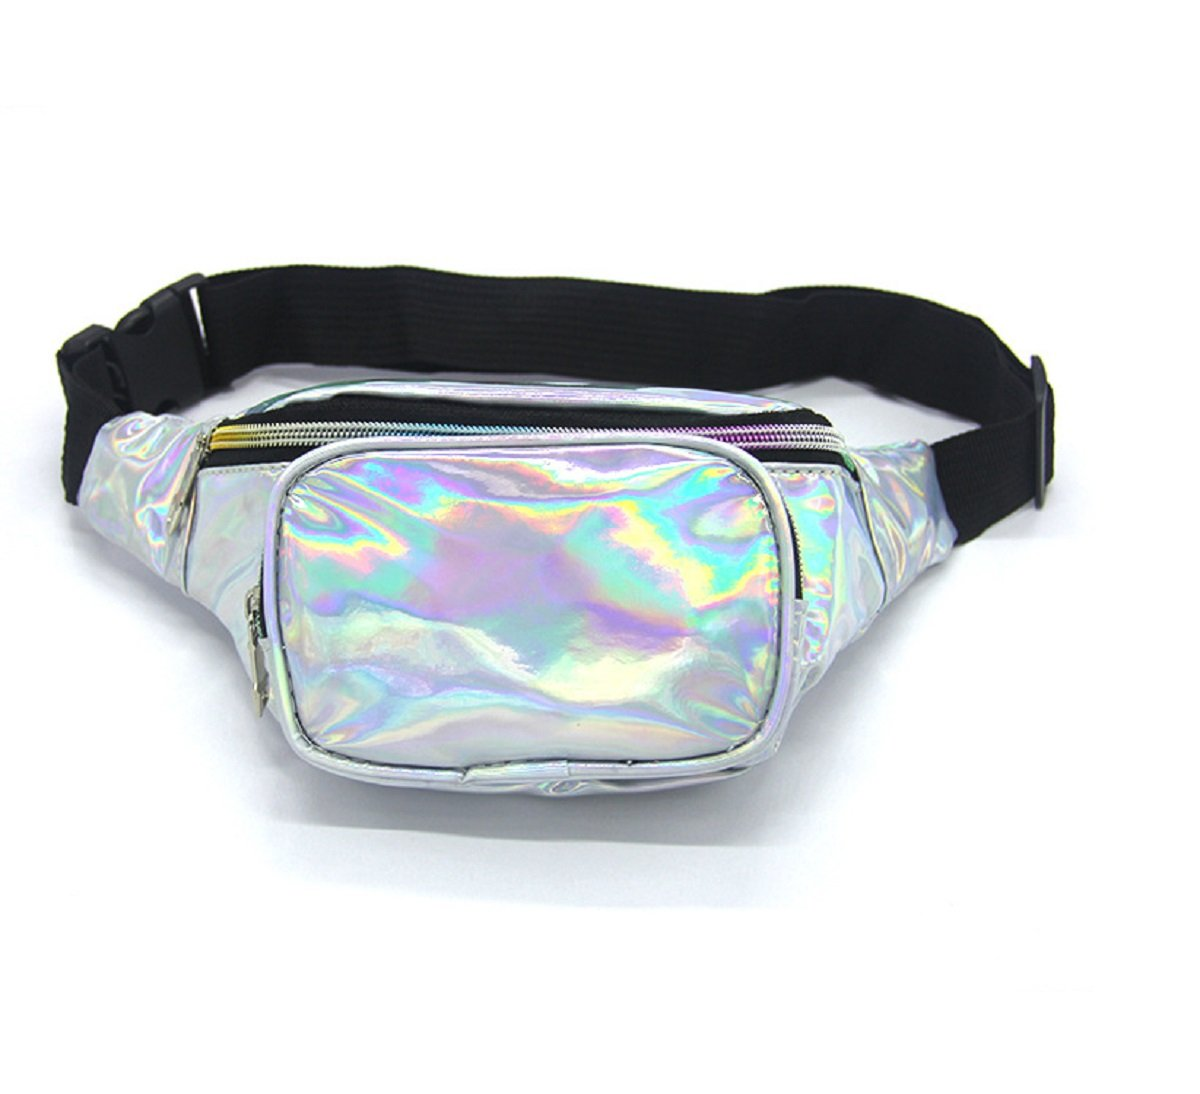 Gogoxm Womens Fanny Pack Waist Bag Water Resistant Chest Bags Holographic Waist Pack Glitter for Running Rave Festival Party Silver